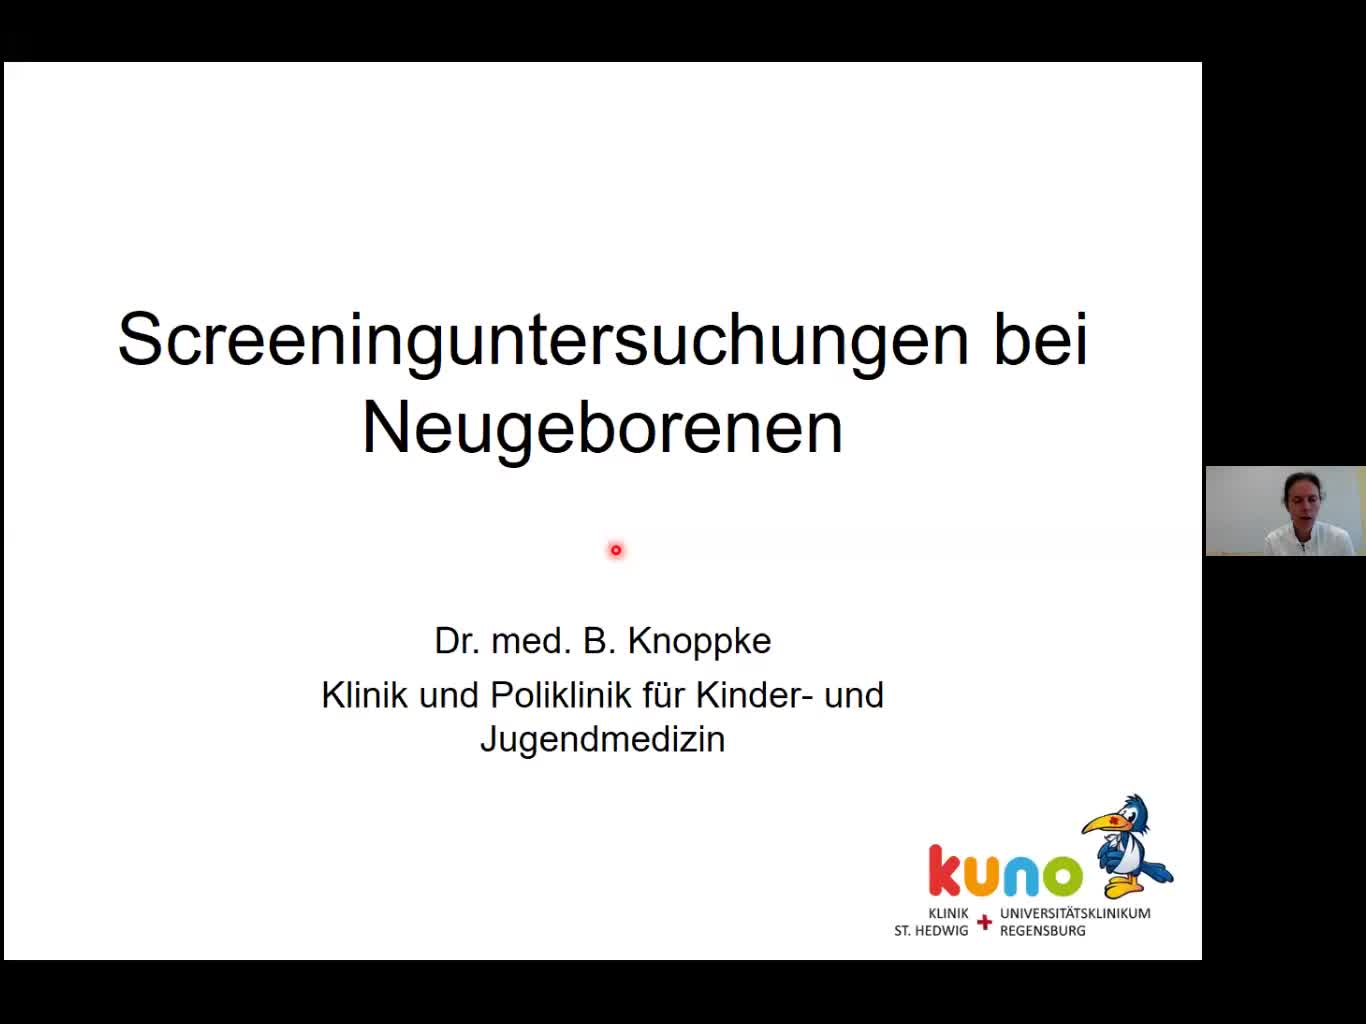 Screening im Neugeborenenalter